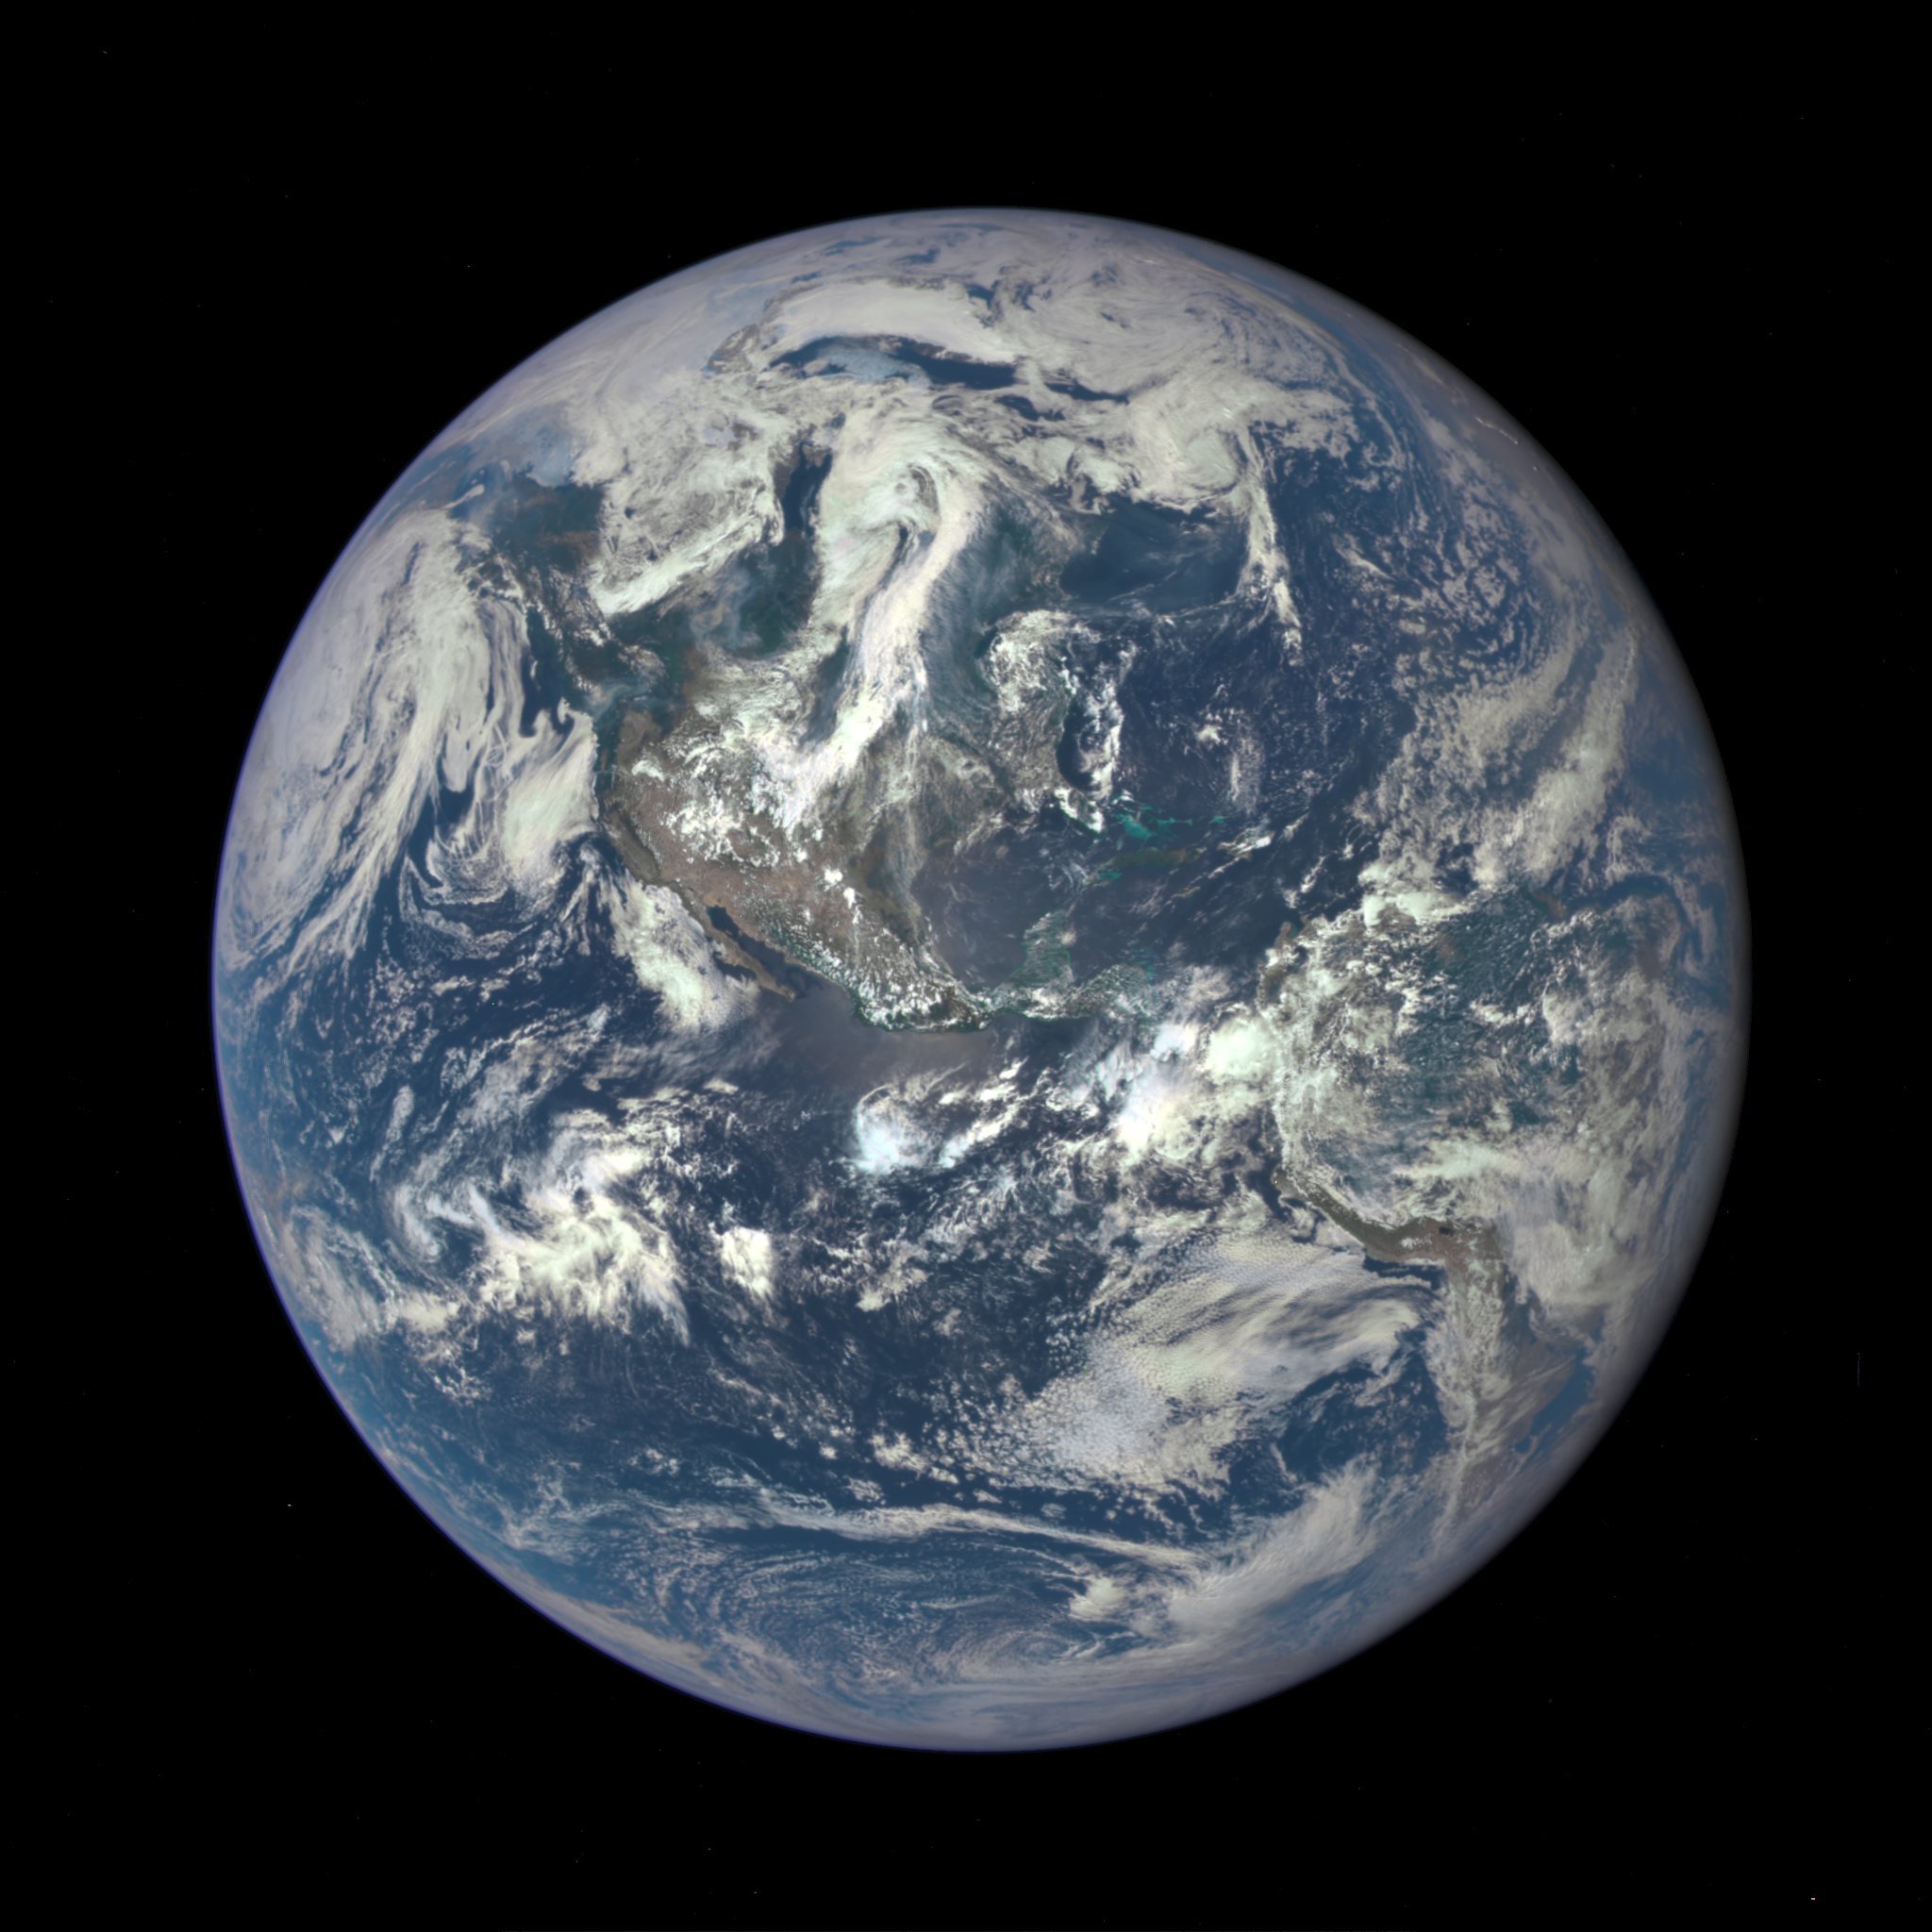 Earth as seen from a distance of one million miles by a NASA scientific camera aboard the Deep Space Climate Observatory spacecraft on July 6, 2015.